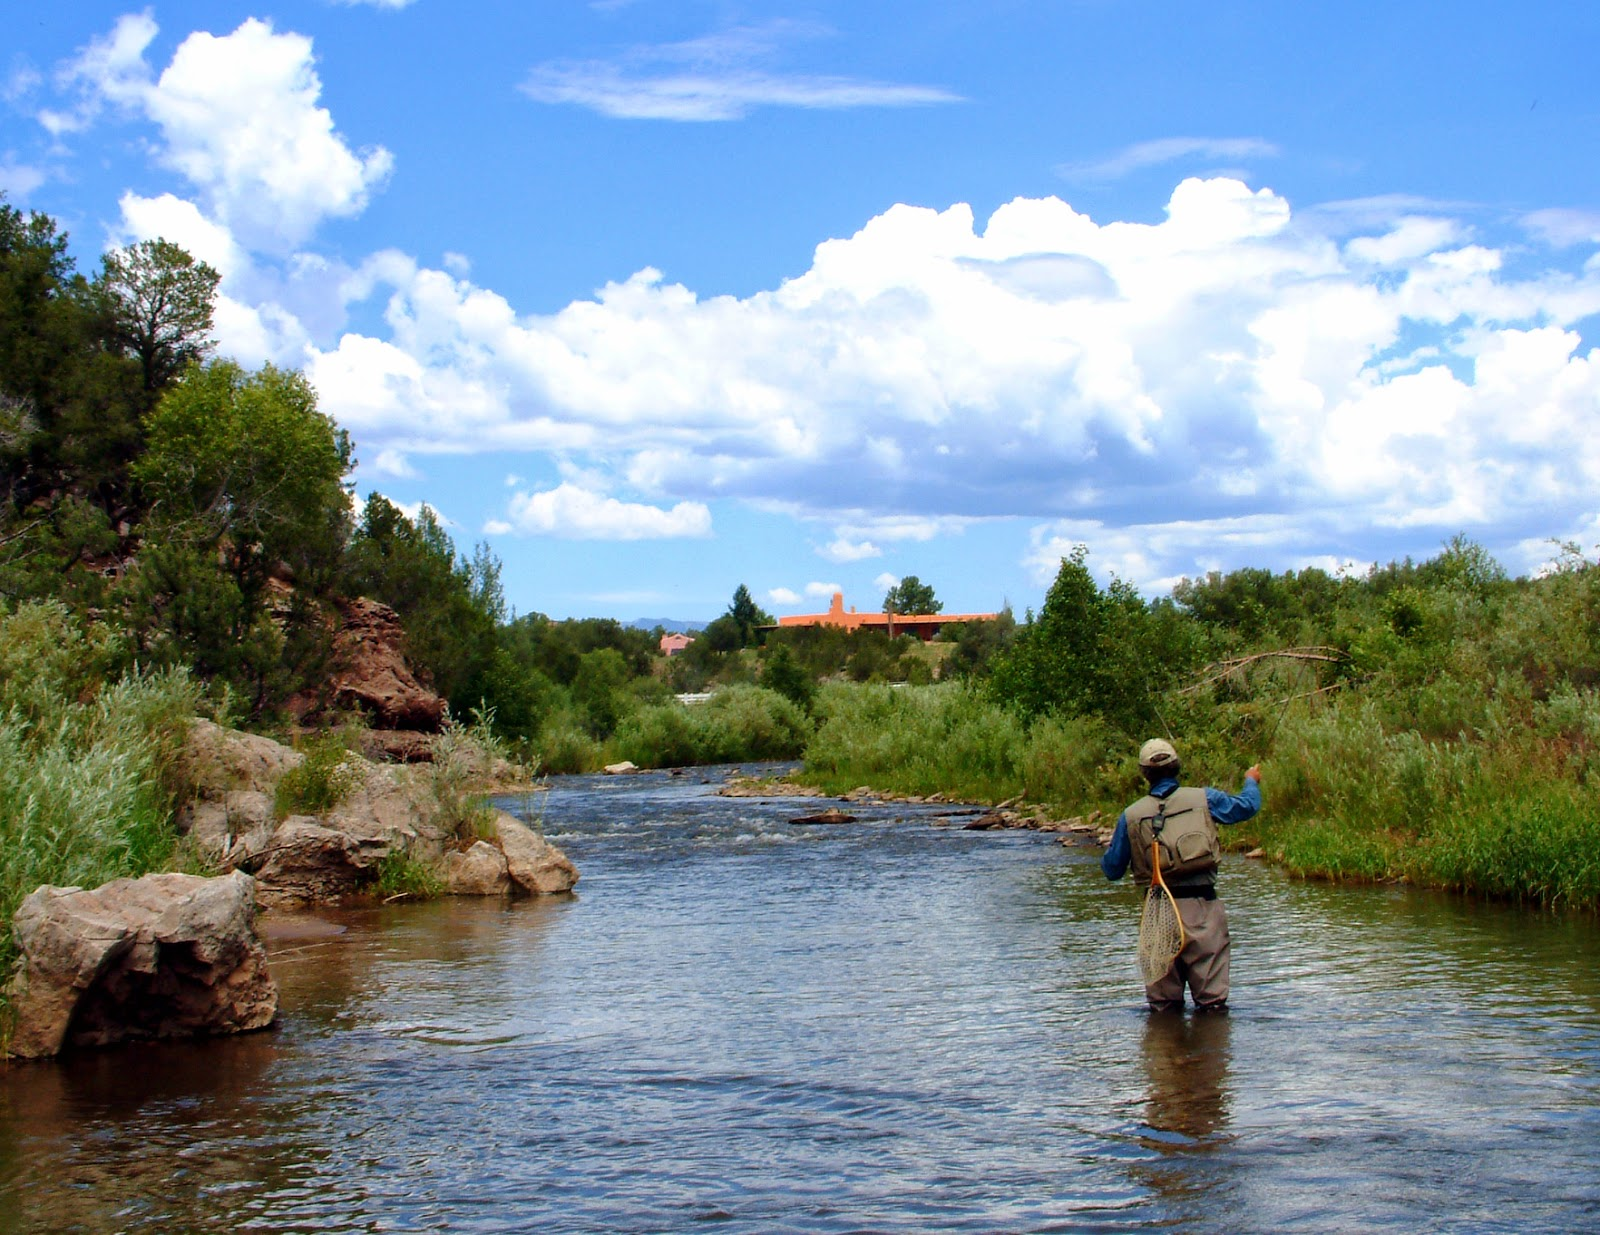 Outdoors nm pecos river on the mend latest fish count shows for Pecos river fishing